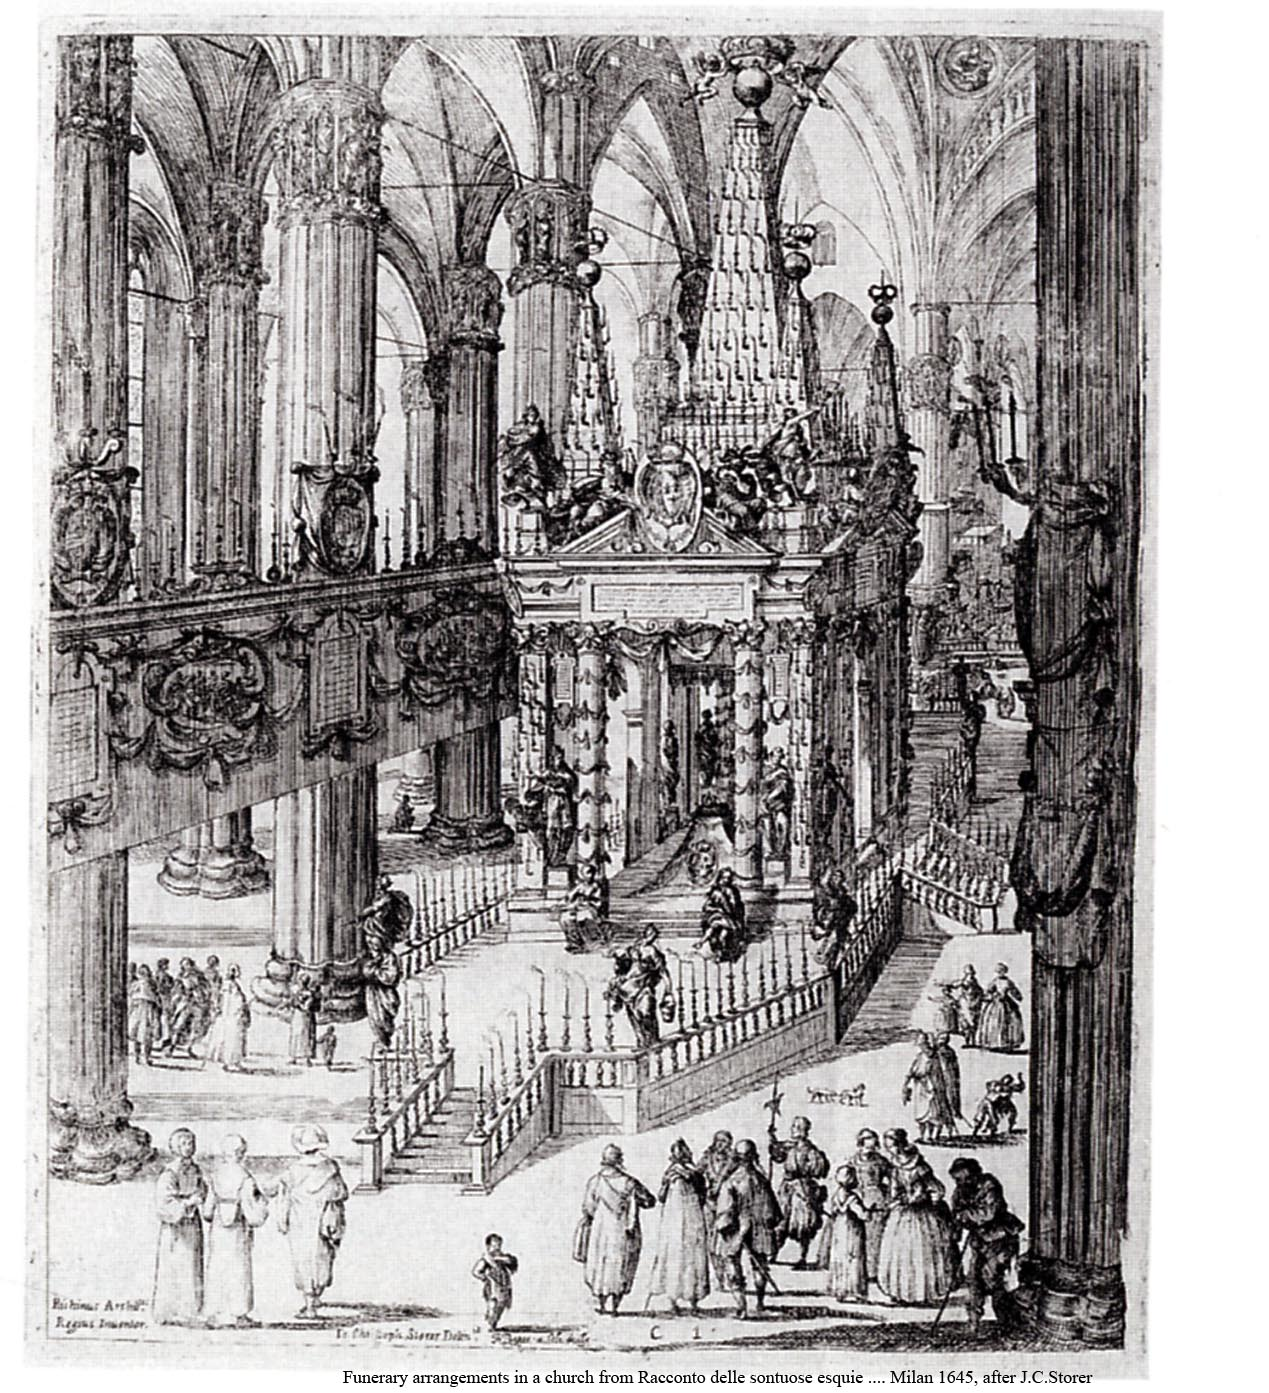 Baroque Architecture Drawings a Funeral Canopy in a Baroque